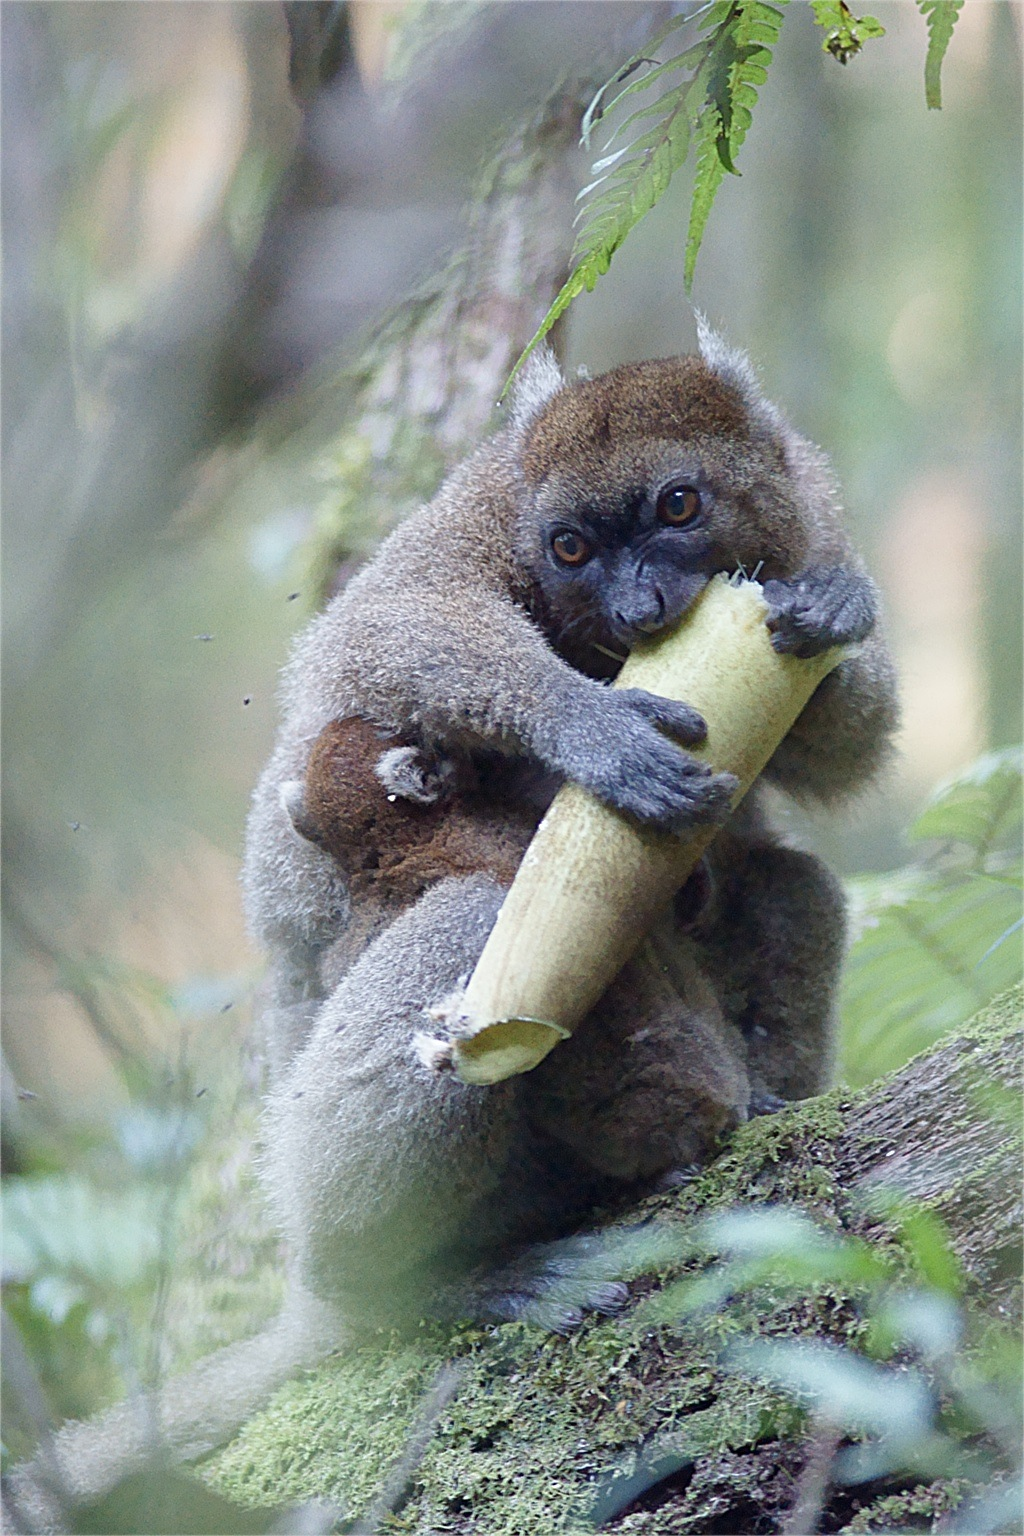 A greater bamboo lemur eats the tough bamboo culm, which it only does during the dry season. But it prefers bamboo shoots which are more nutritious. Photo by Jukka Jernvall